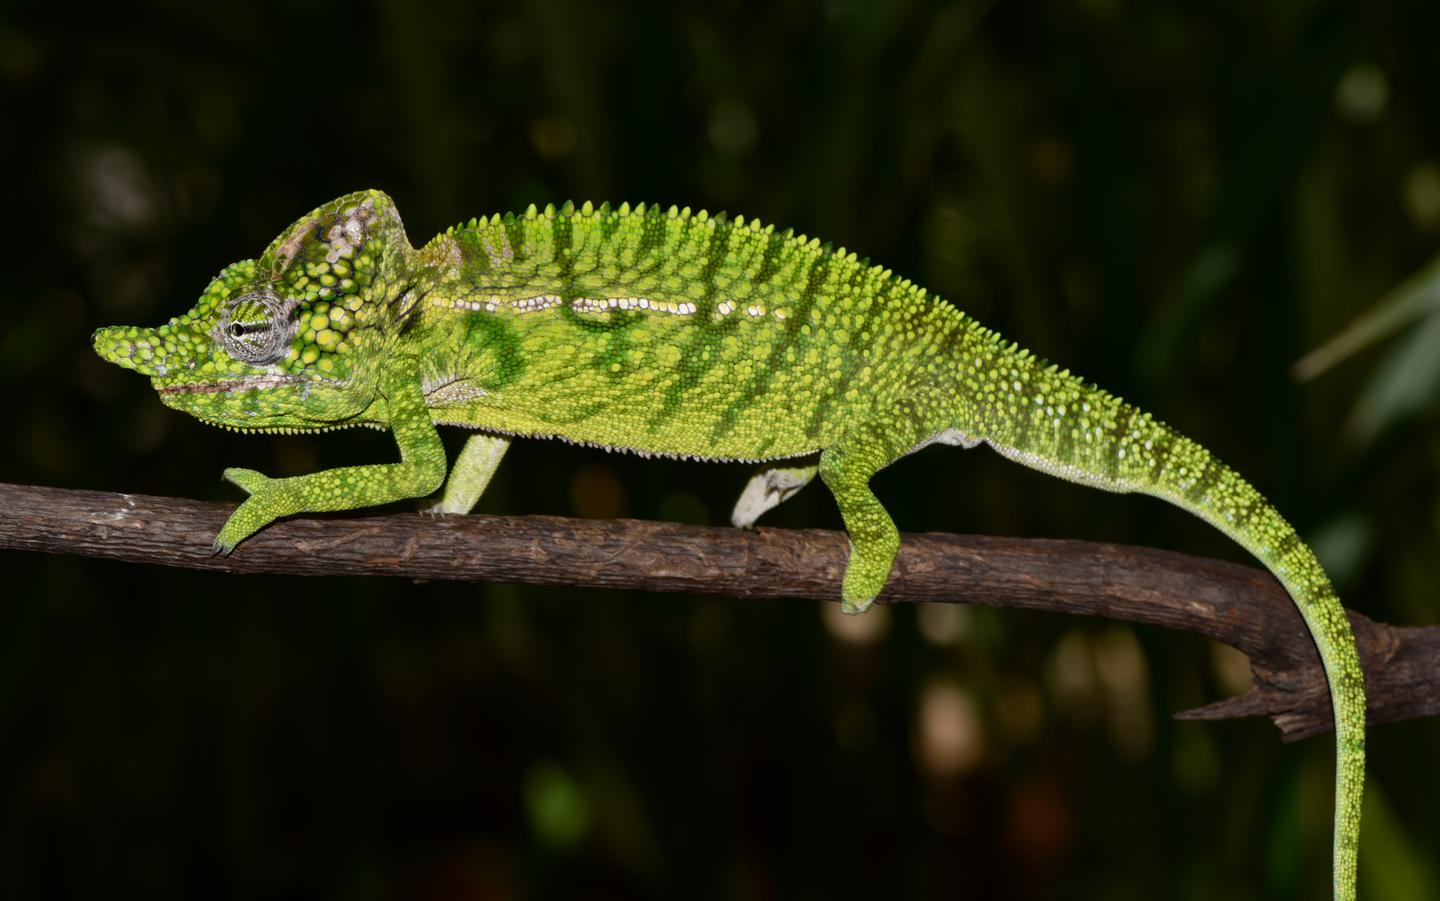 Researchers think Voeltzkow's chameleon lives for only a matter of months